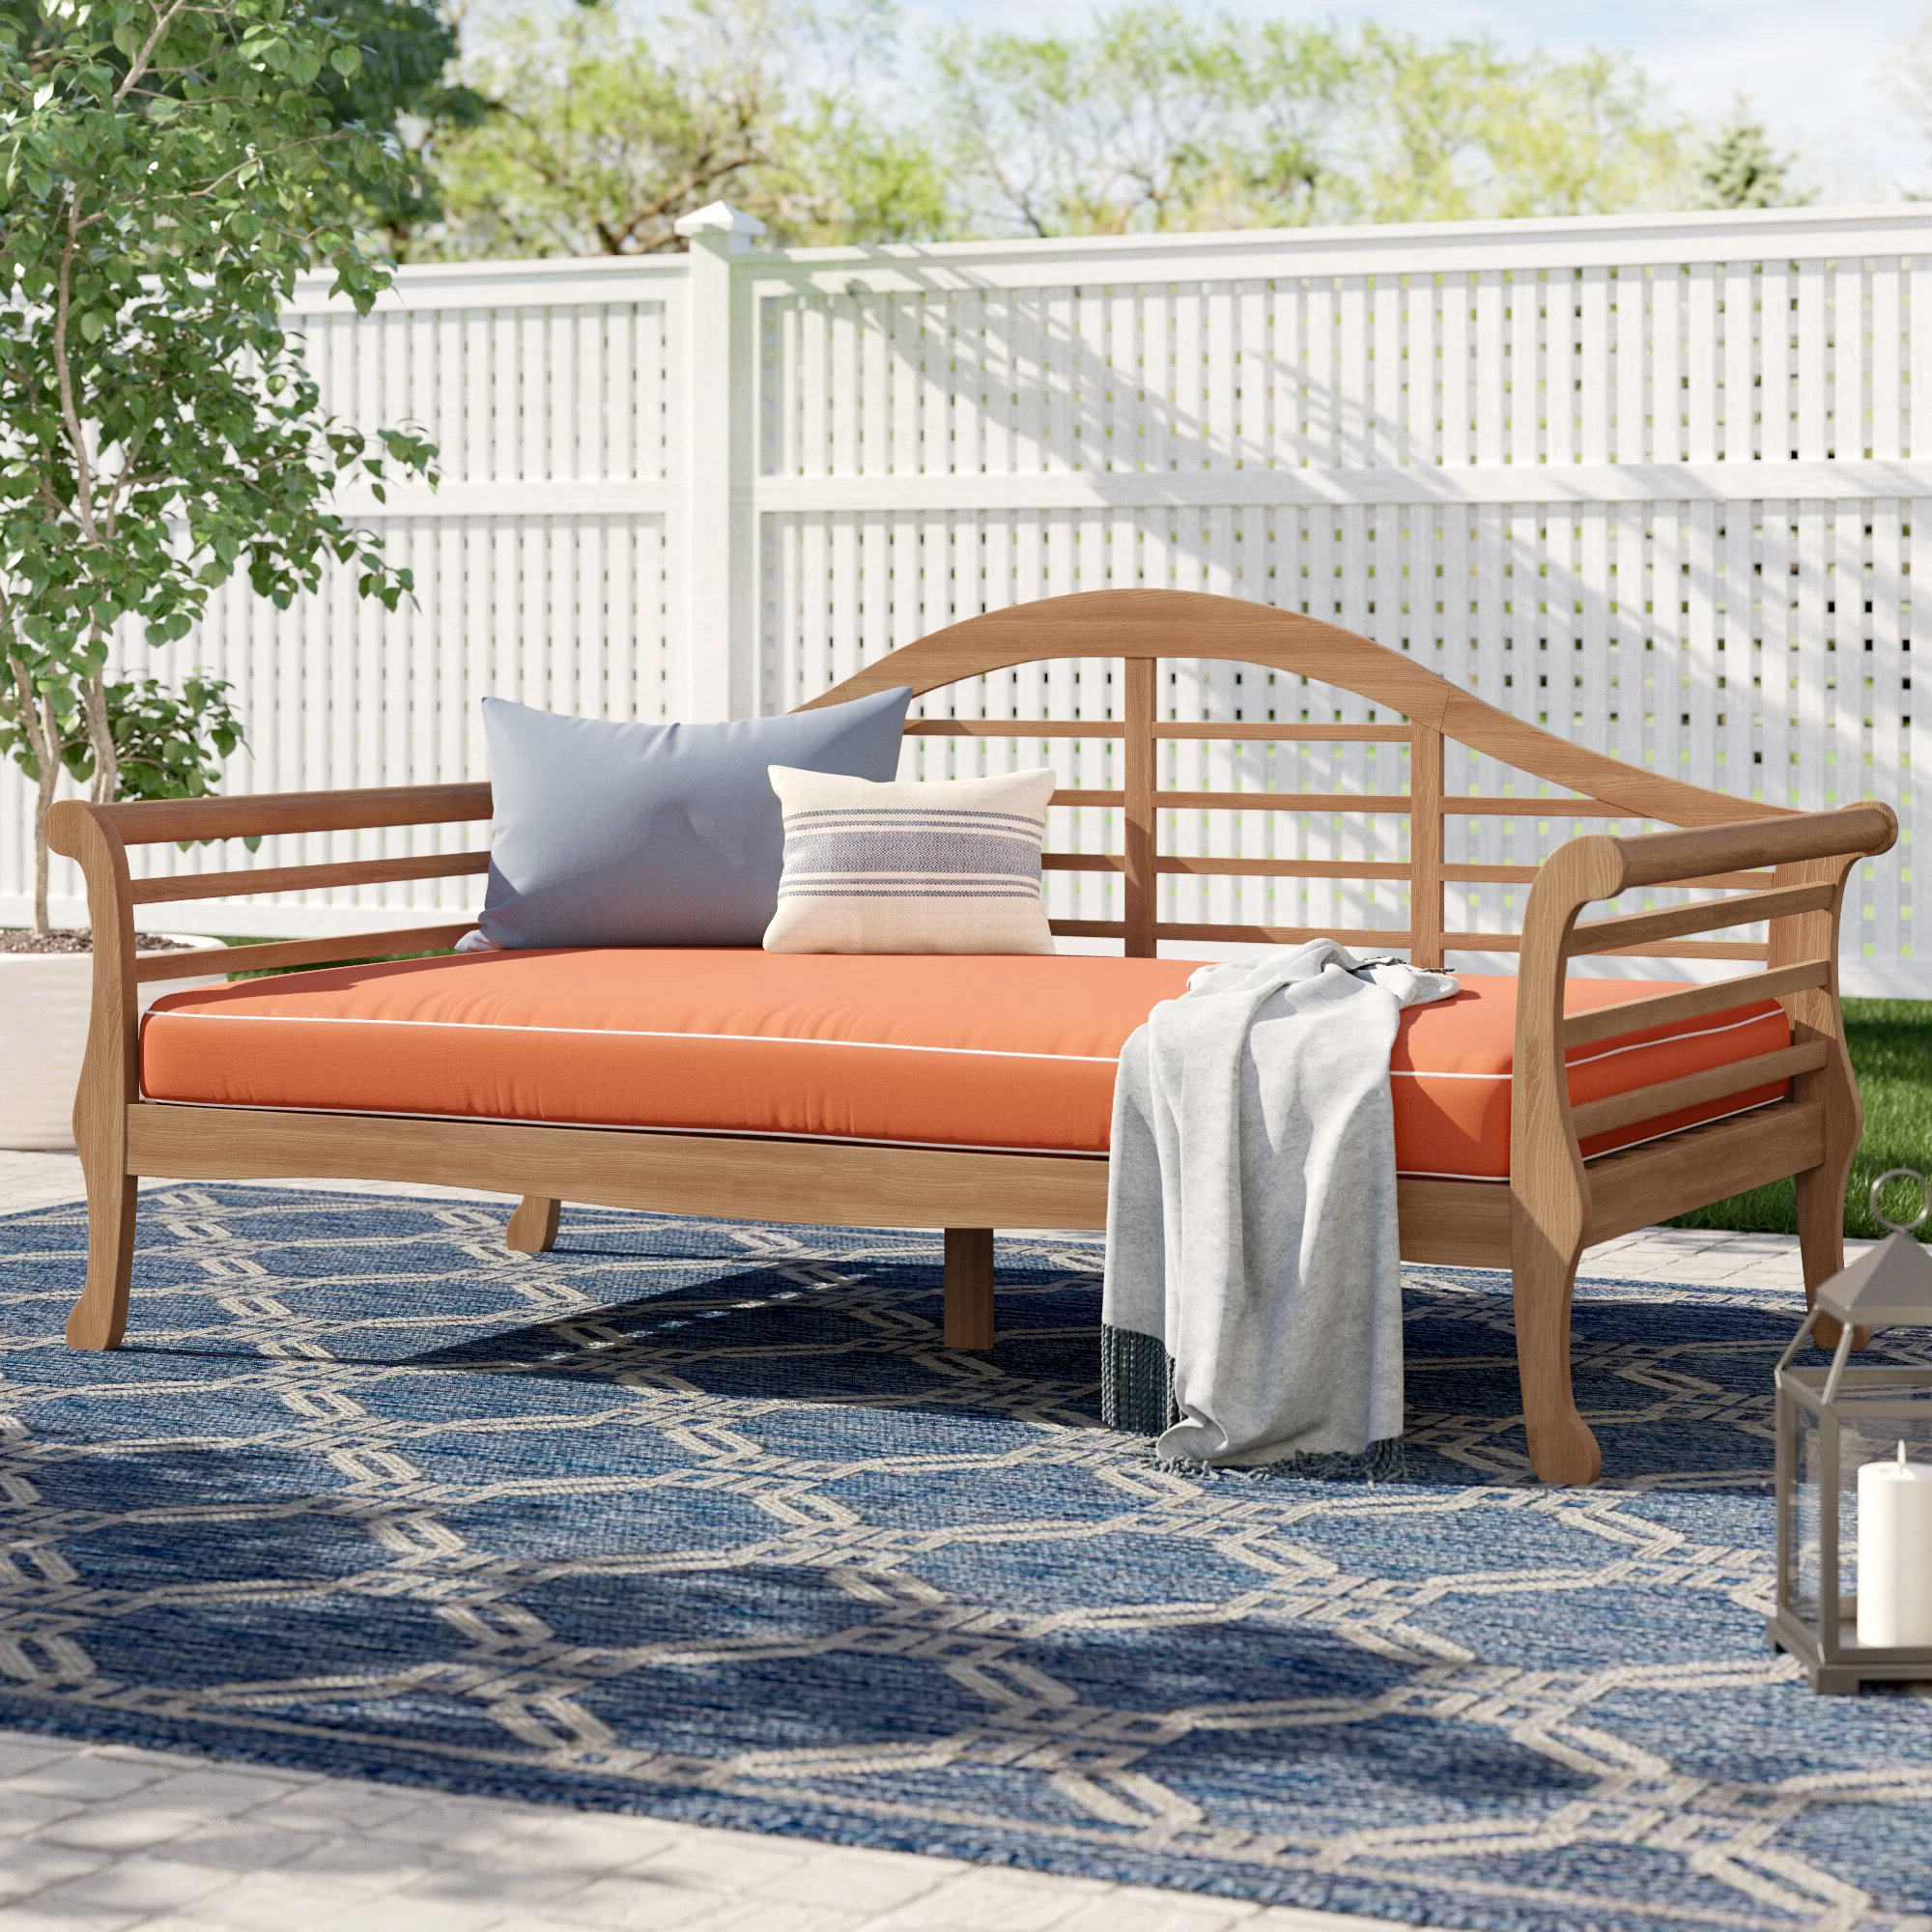 2020 Summerton Teak Patio Sofa With Cushions Pertaining To Bodine Patio Daybeds With Cushions (View 3 of 25)